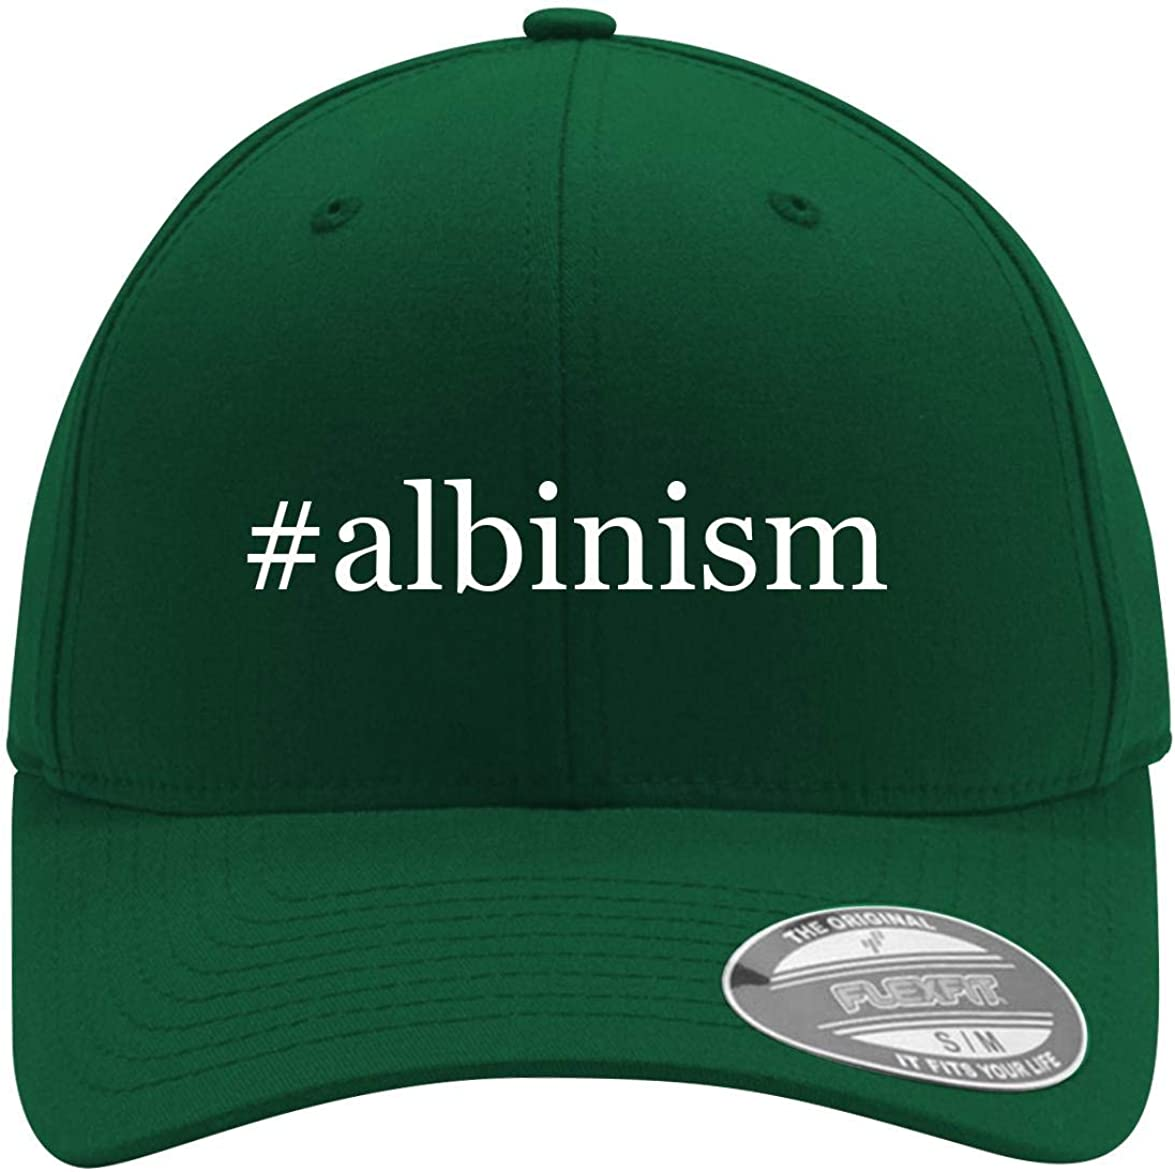 #Albinism - Adult Men'S Hashtag Flexfit Baseball Hut Cap